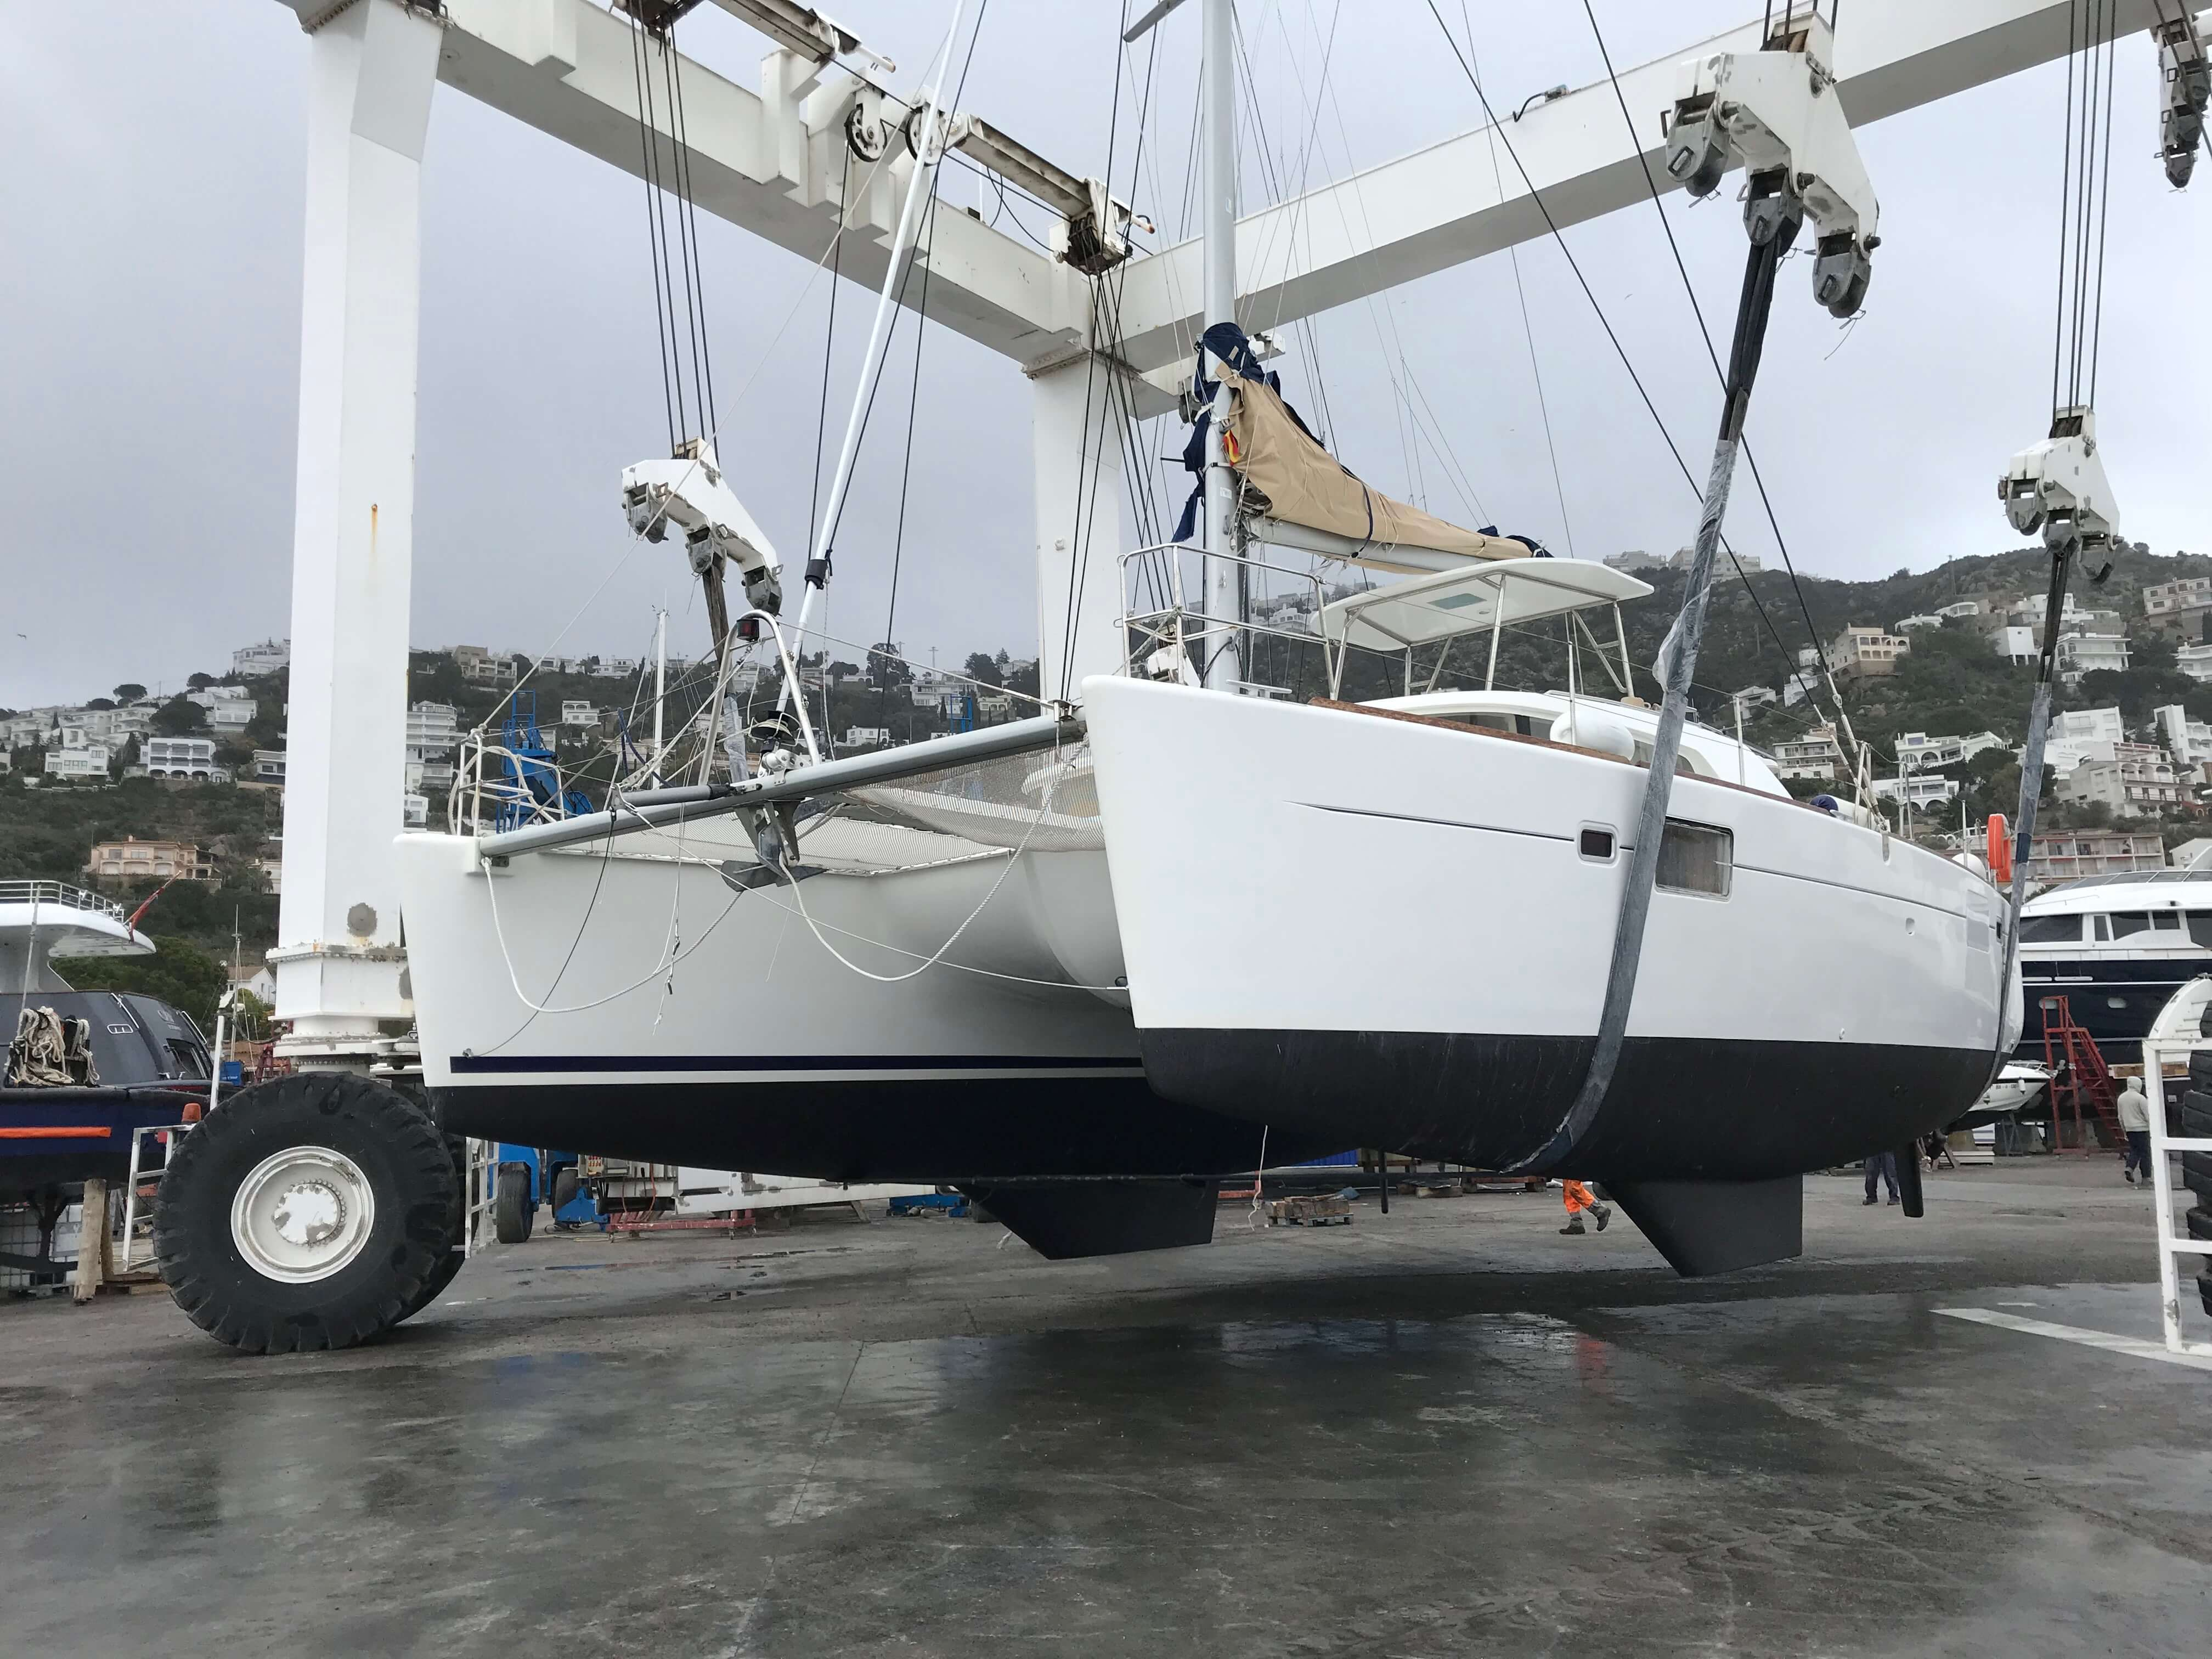 24 Oct Latest Listings and Price Cuts on Catamarans.com